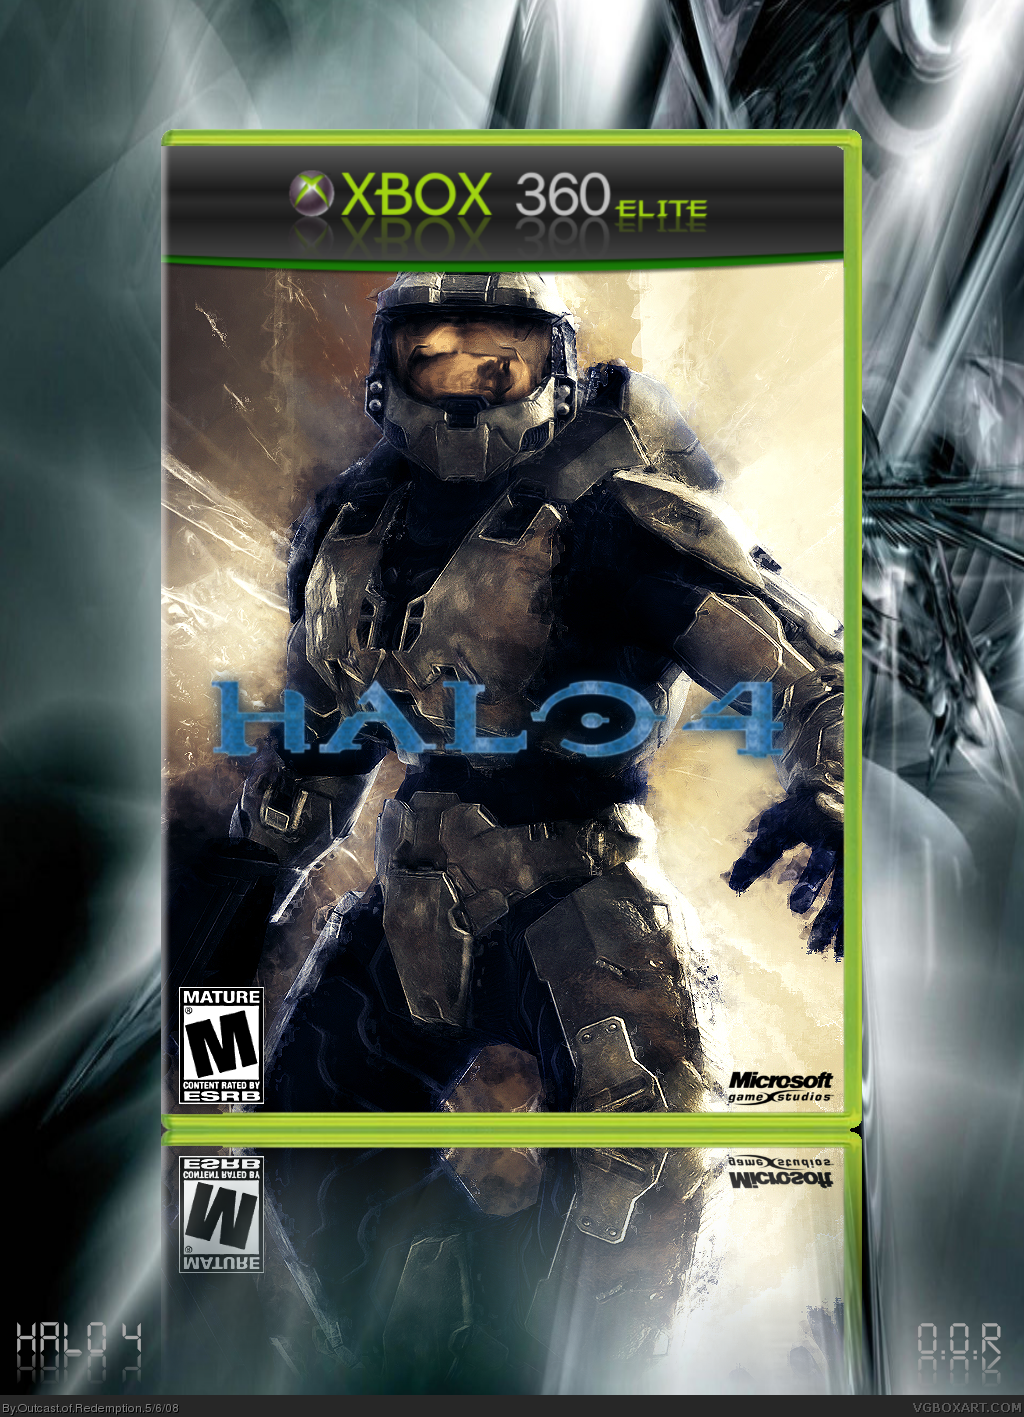 For about a year after Halo 3 people thought there would come a Halo 4.